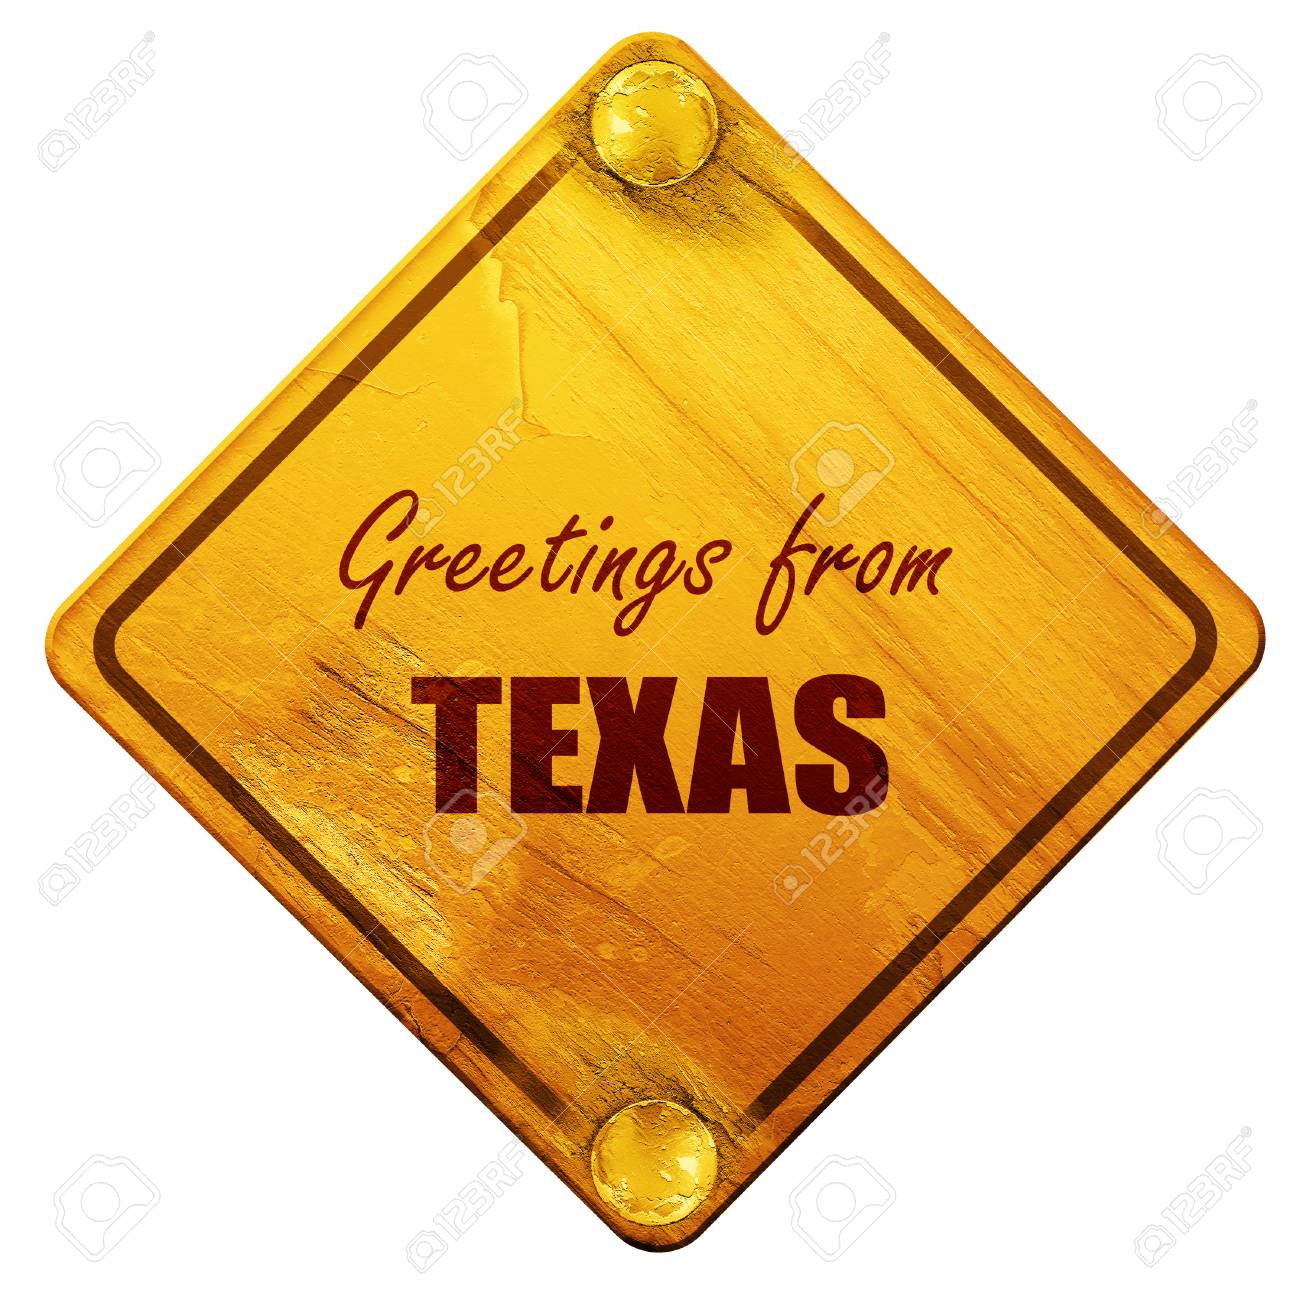 Greetings from texas with some smooth lines 3d rendering yellow greetings from texas with some smooth lines 3d rendering yellow road sign on a kristyandbryce Choice Image